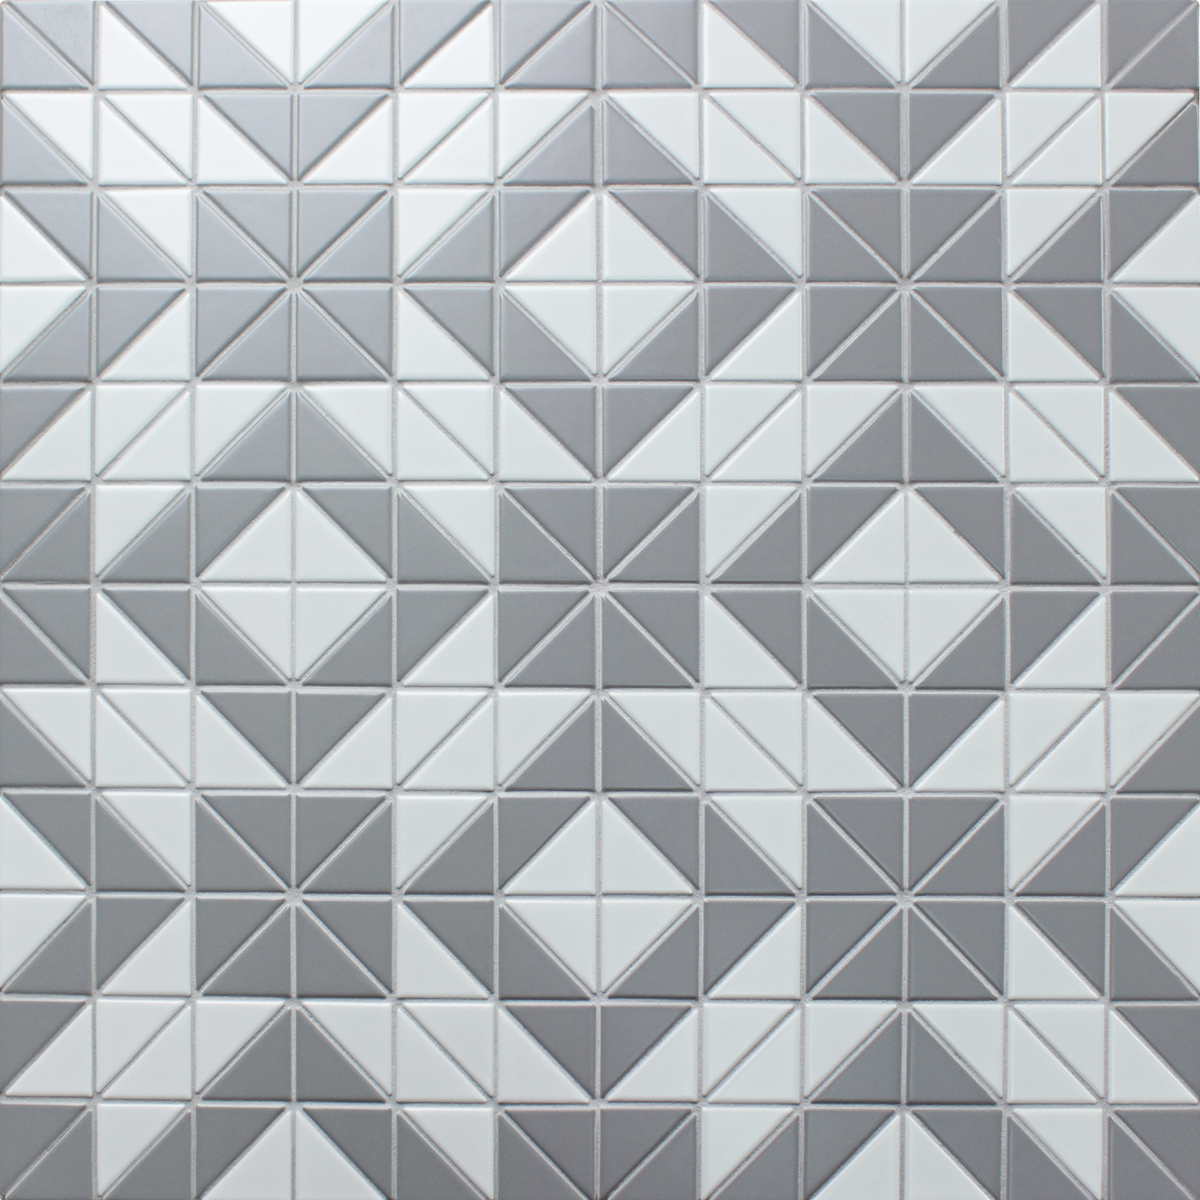 Black and white flooring tiles